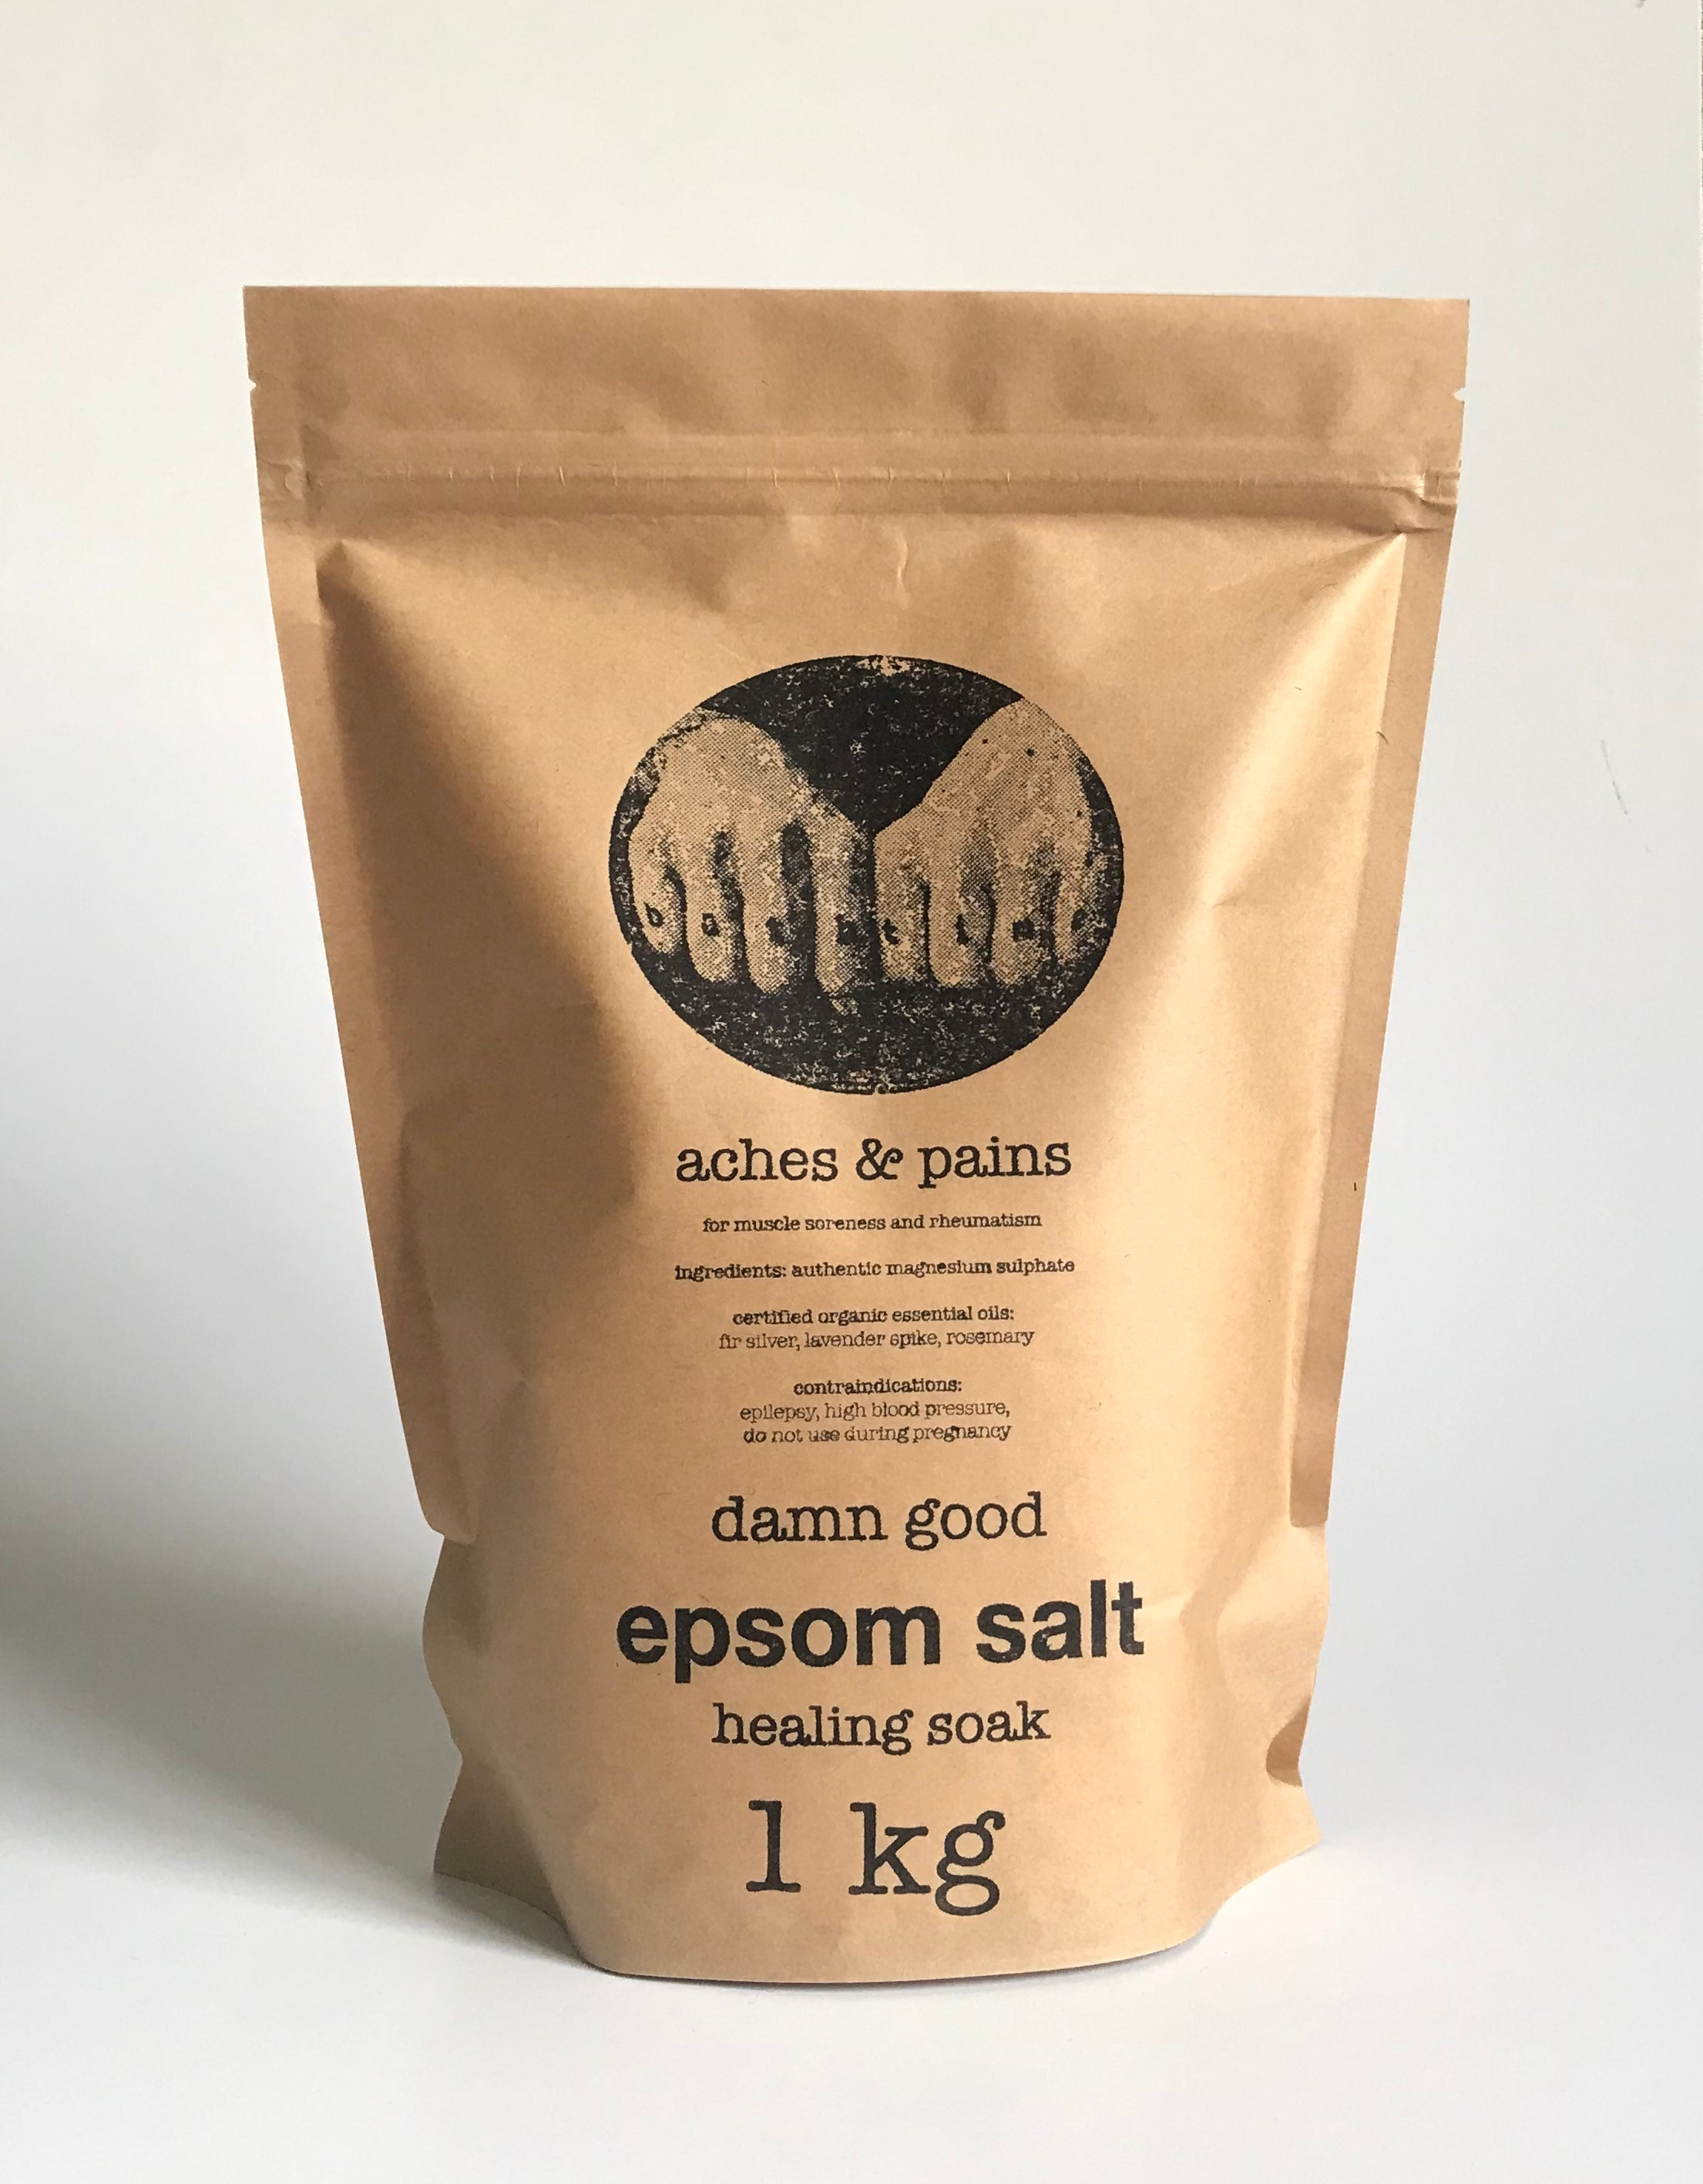 Aches & pains - Bath time - Bath salt